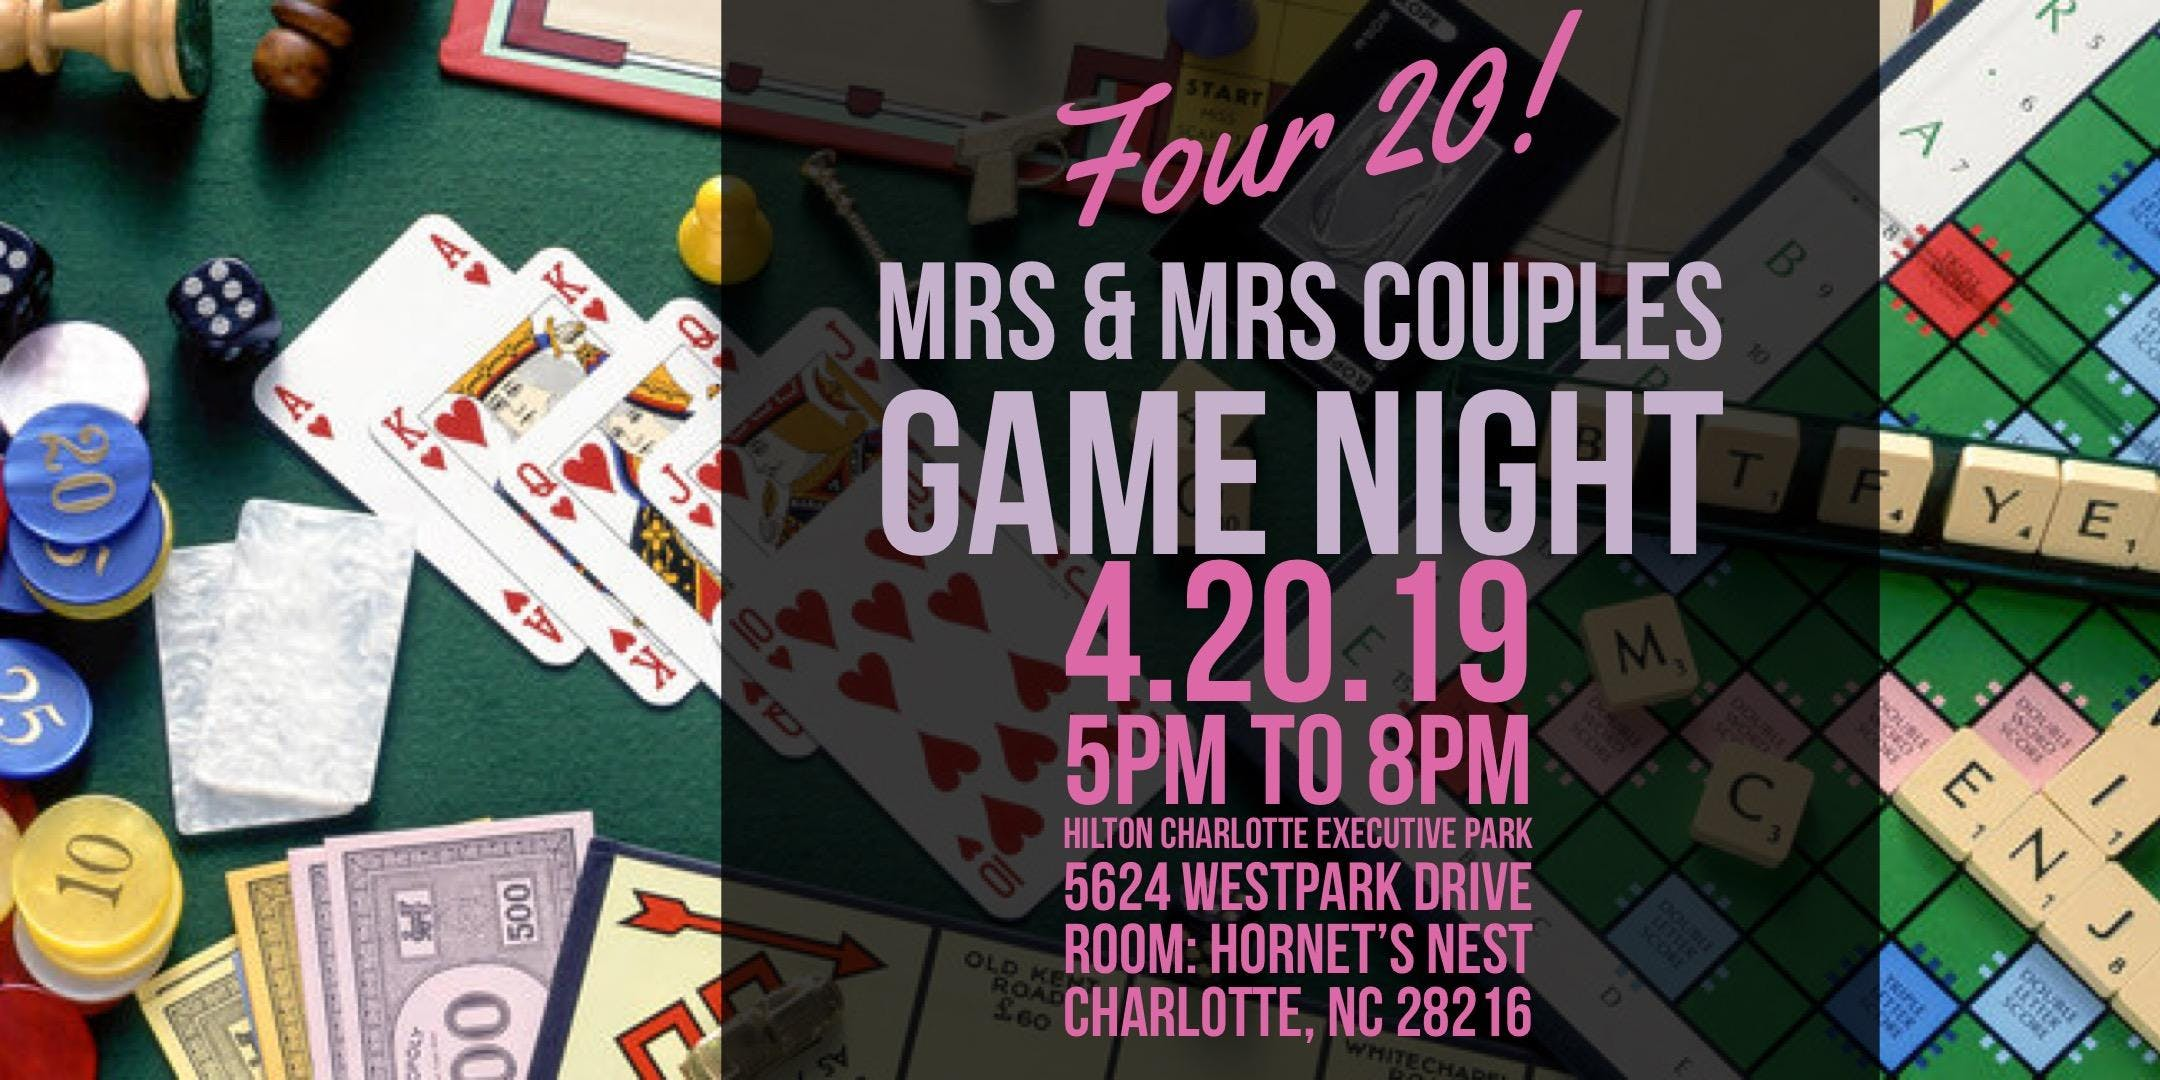 Mrs & Mrs North Carolina Couples Game Night - 20 APR 2019